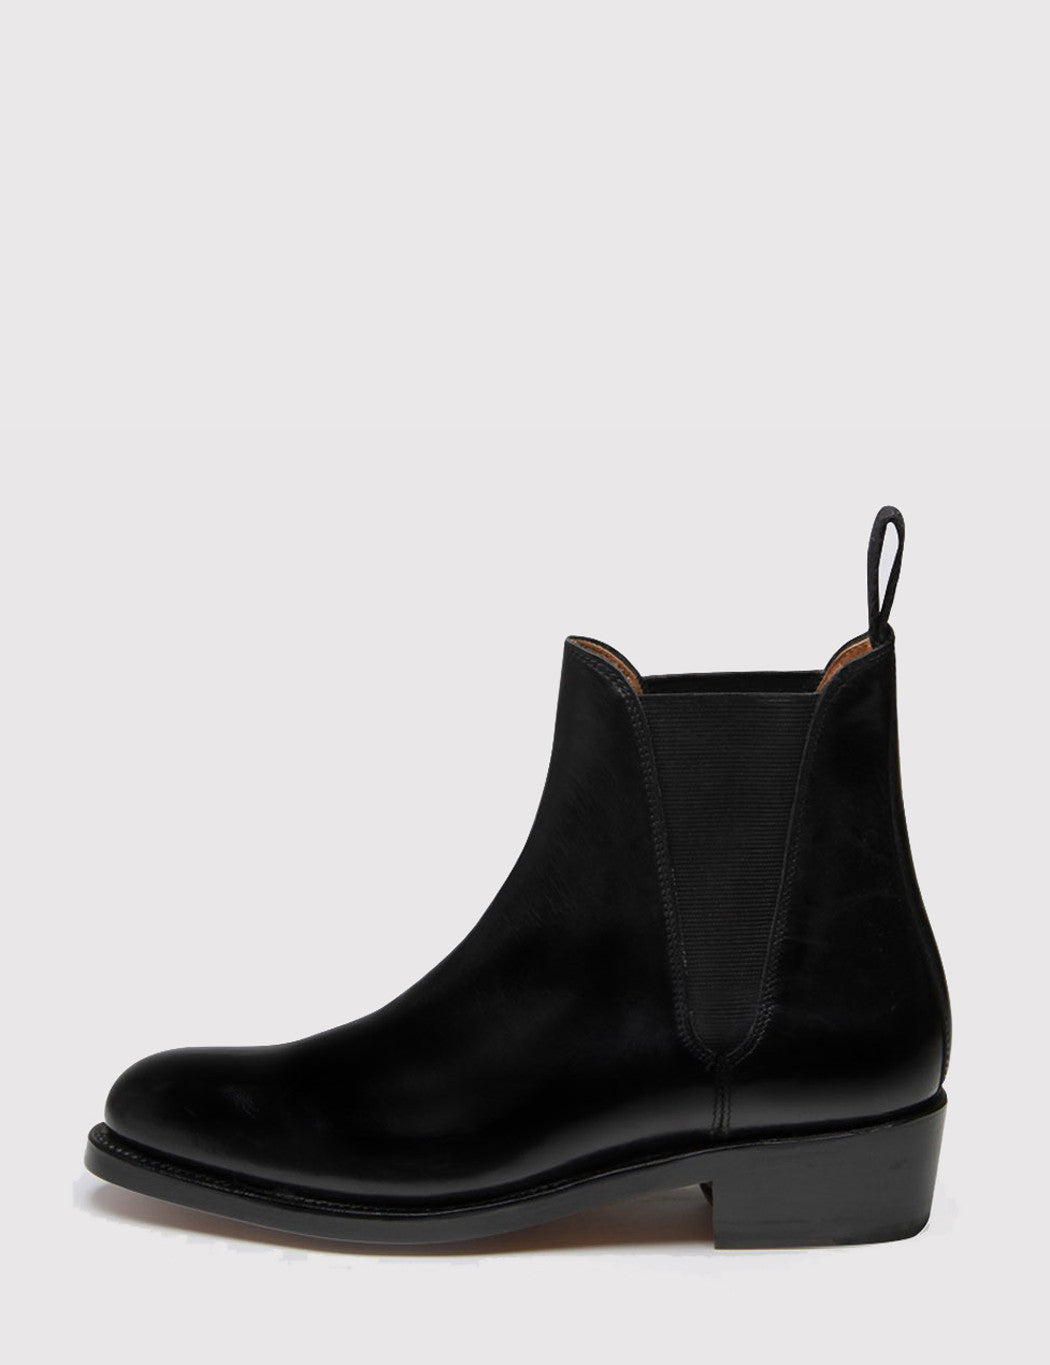 Grenson Womens Nora Heeled Chelsea Boot - Black